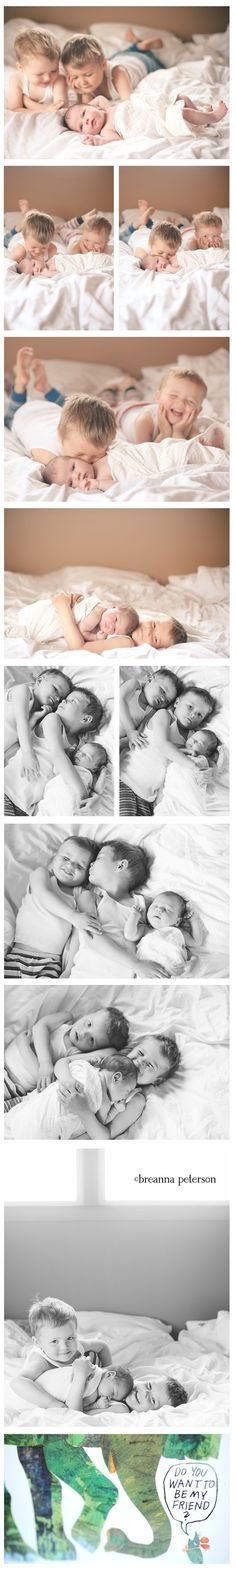 lifestyle newborn shoot with siblings - love